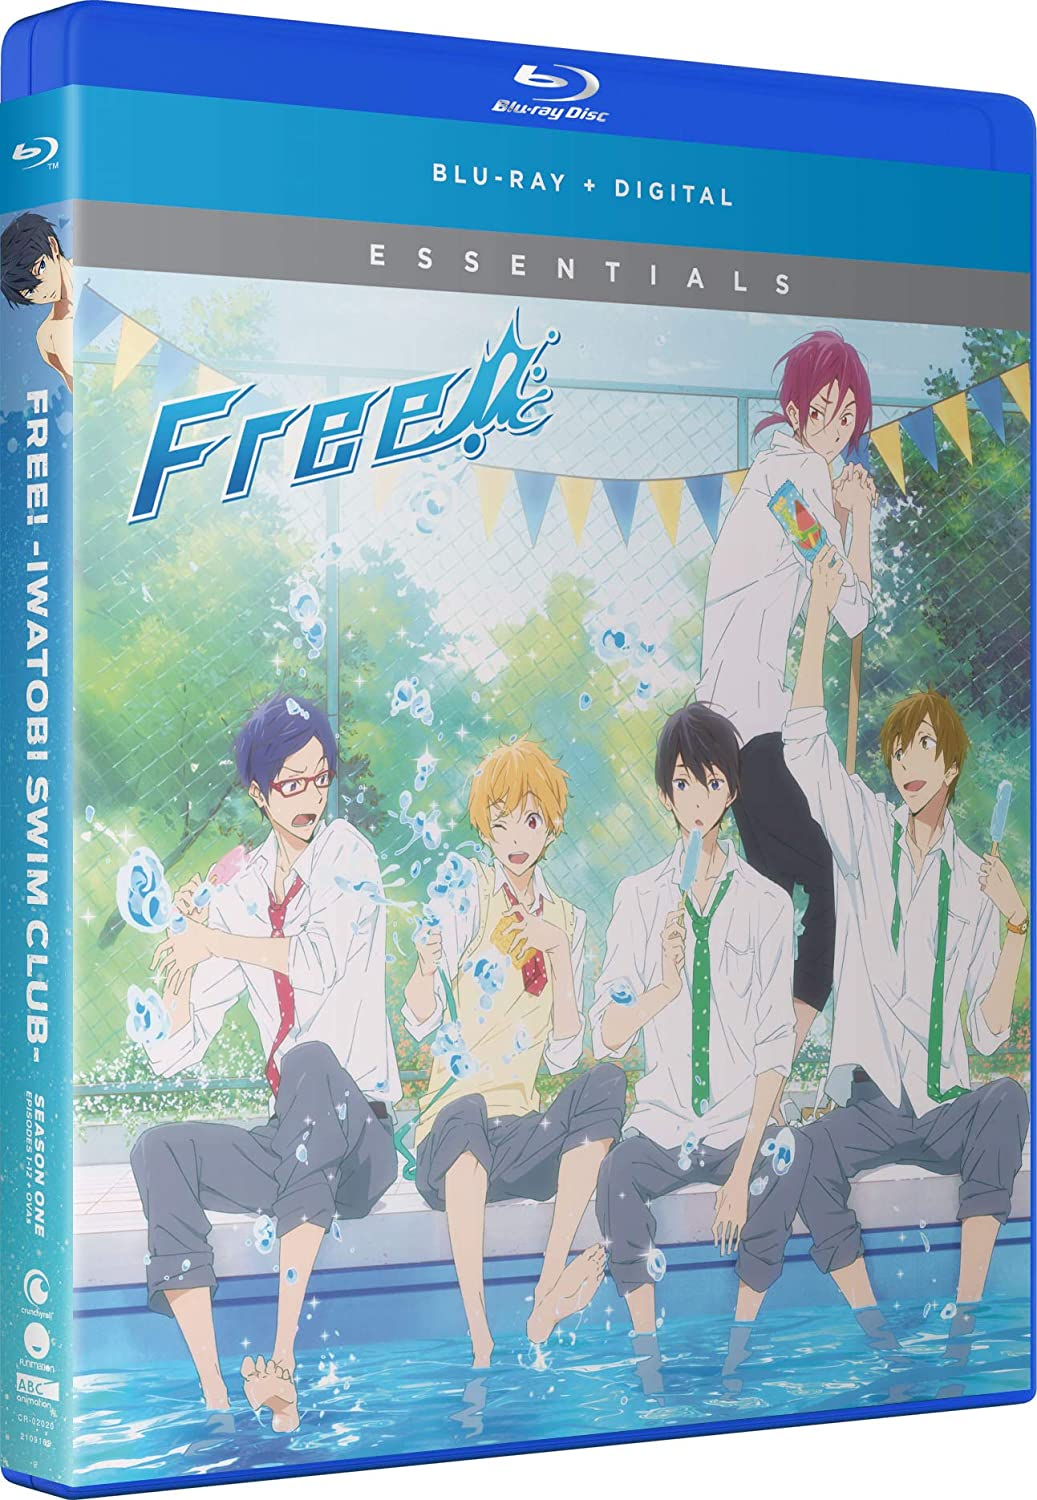 Free! Iwatobi Swim Club Season 1 Essentials Blu-ray (Dual Audio)